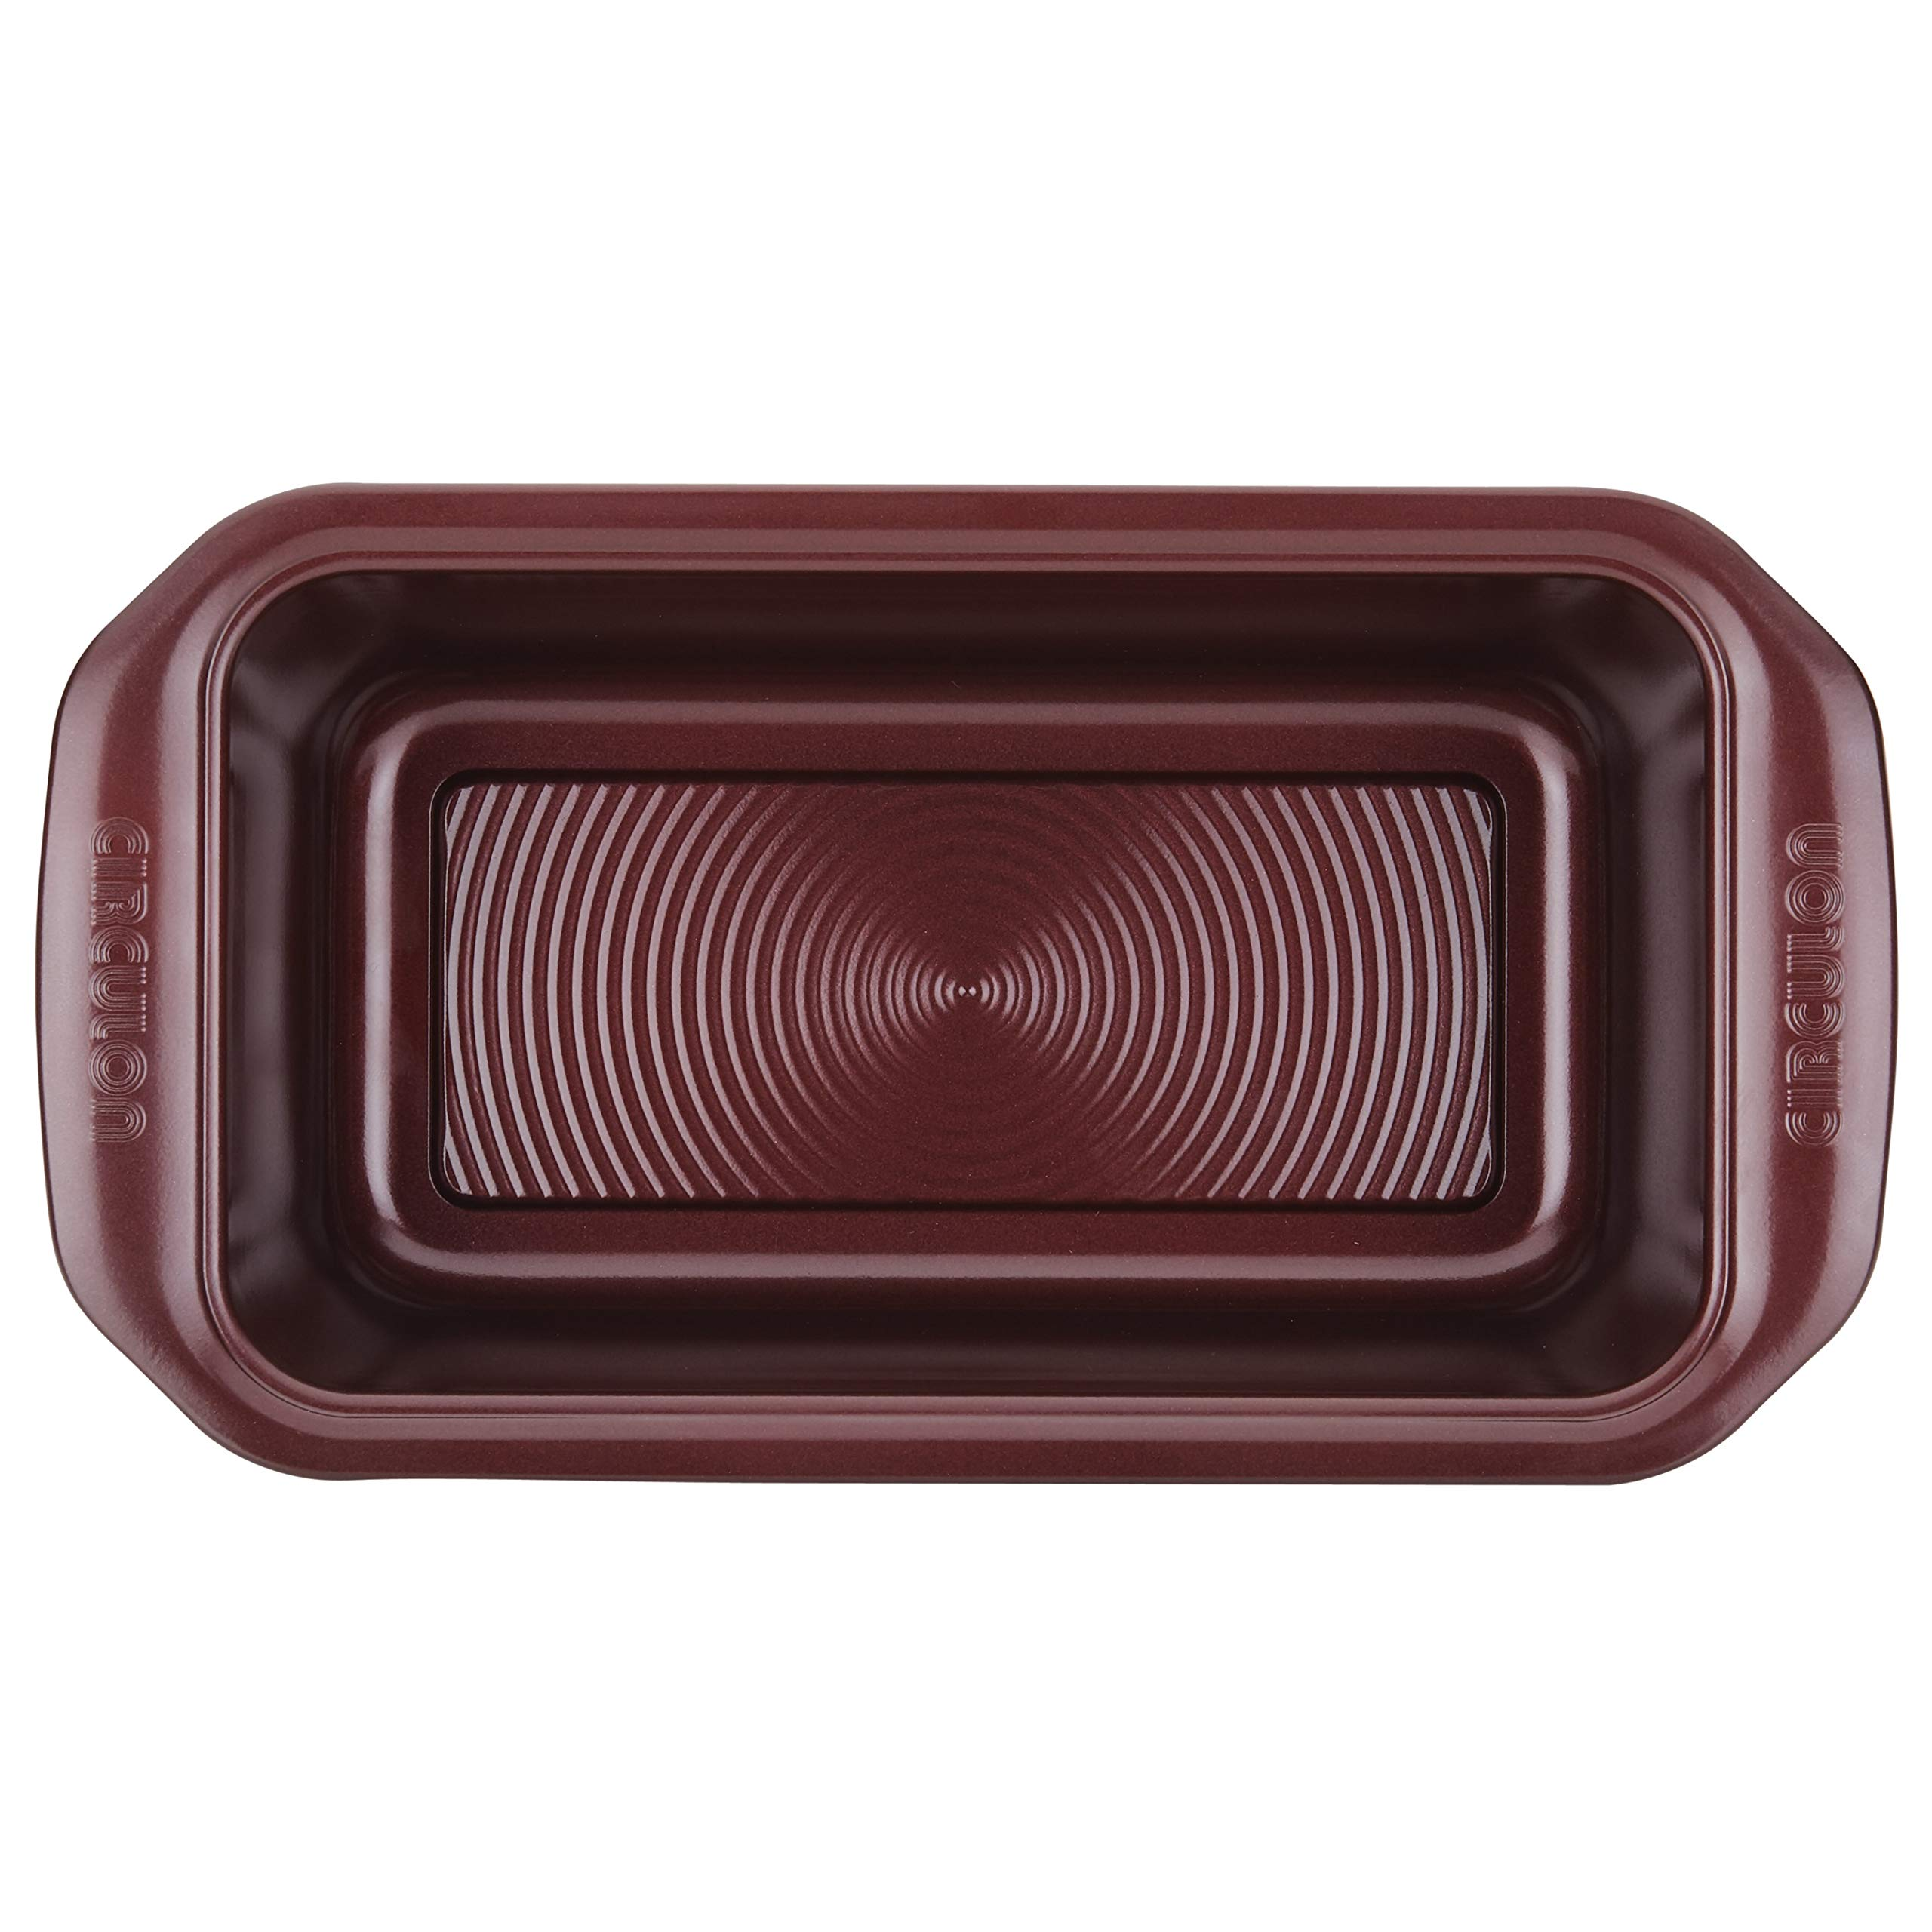 Circulon 47740 10-Piece Steel Bakeware Set, Merlot by Circulon (Image #4)